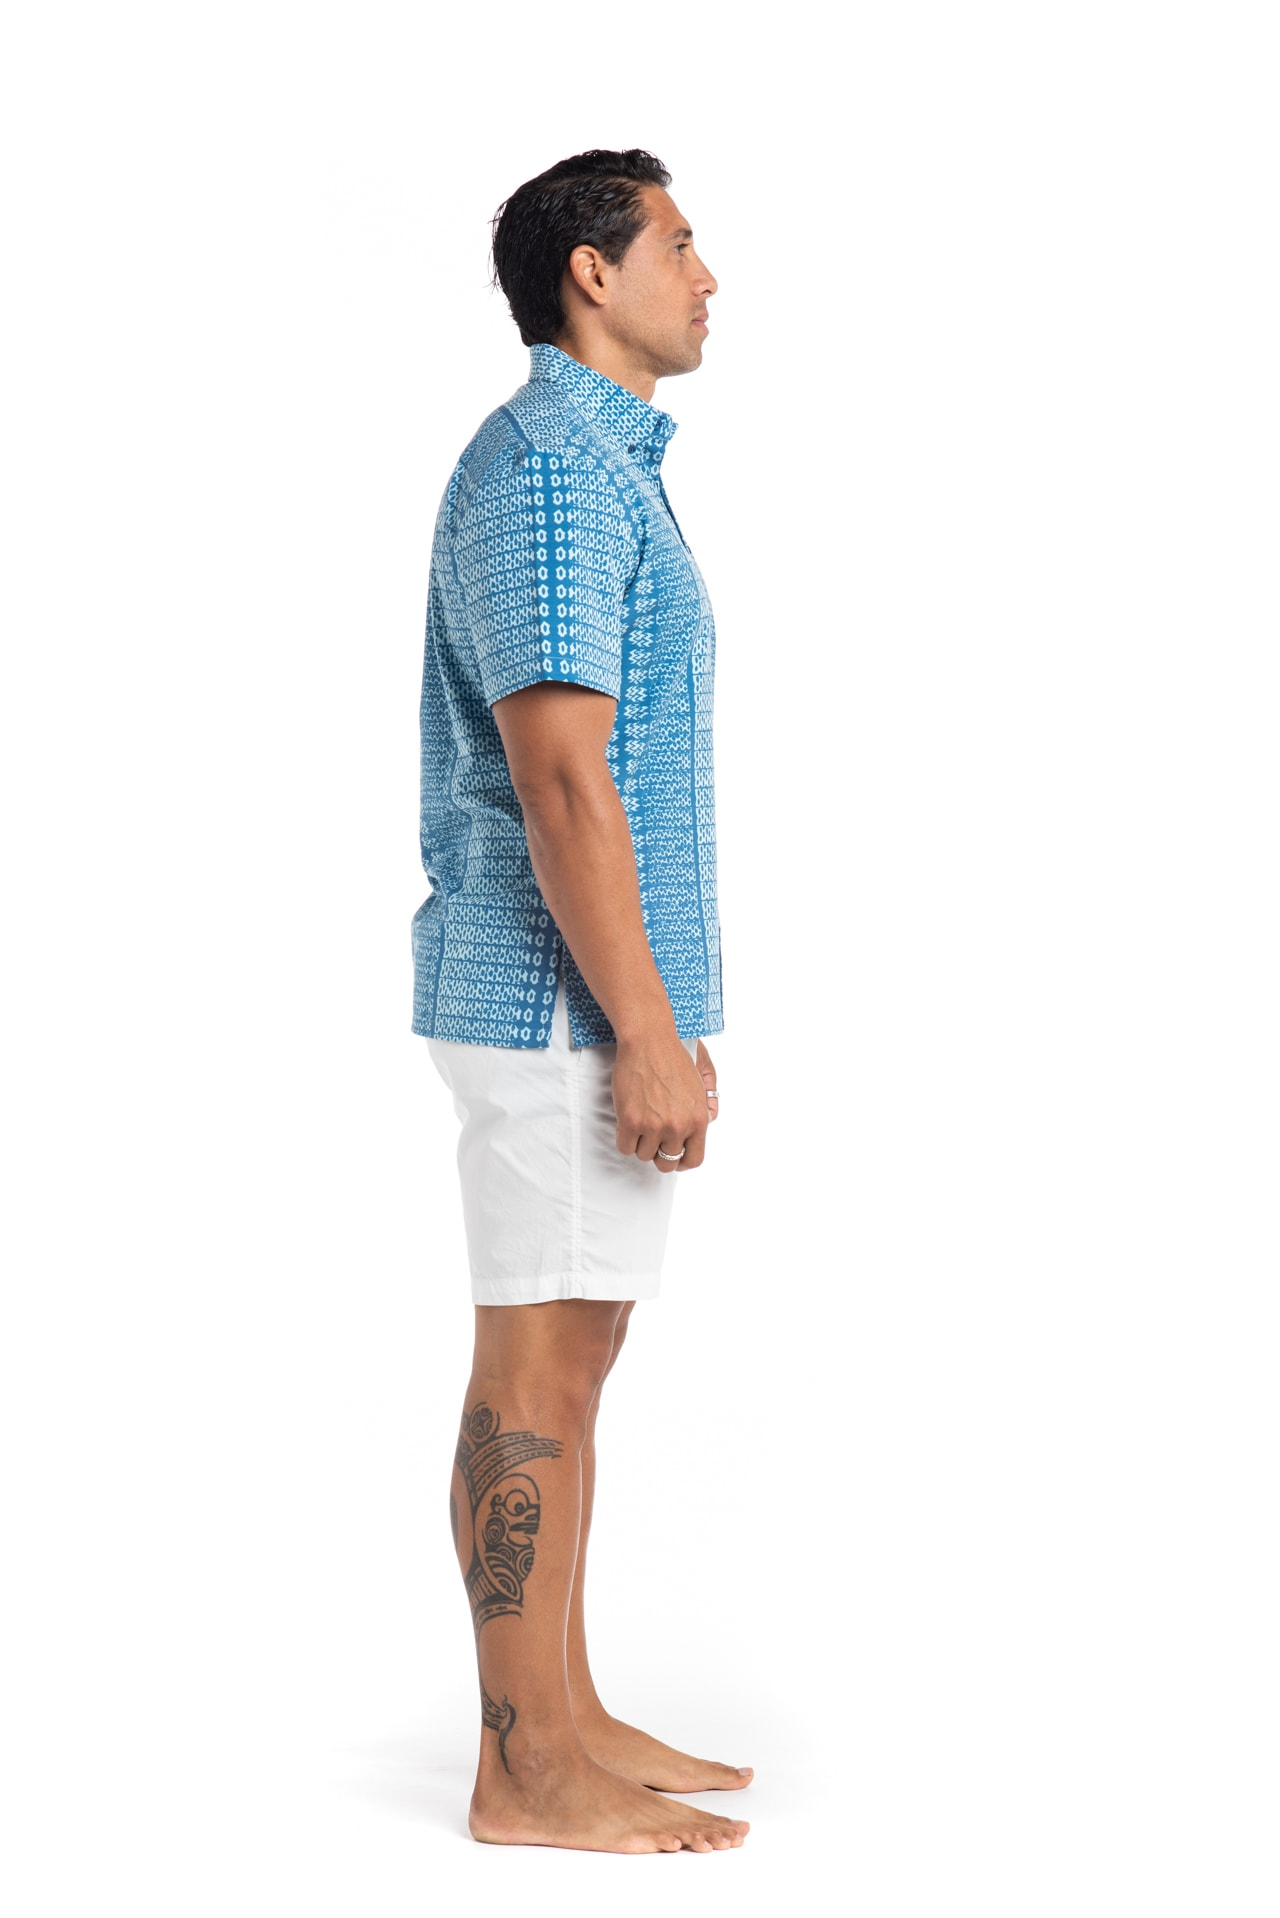 Male model wearing Mahalo Nui Shirt in Light Blue - Side View